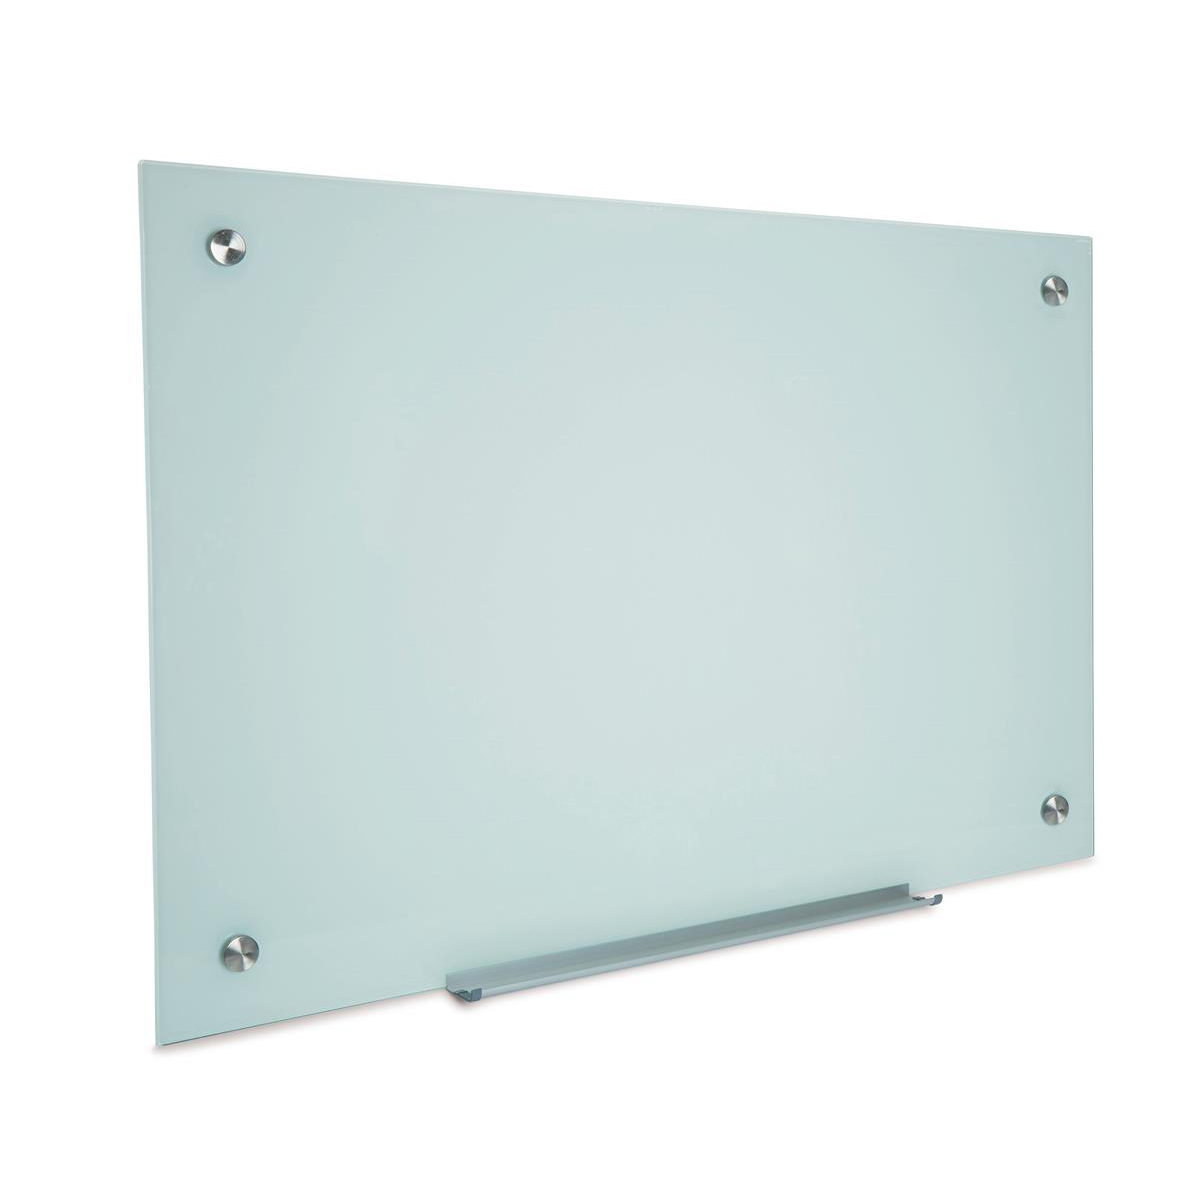 5 Star Office Glass Board Magnetic with Wall Fixings W1000xH650mm White